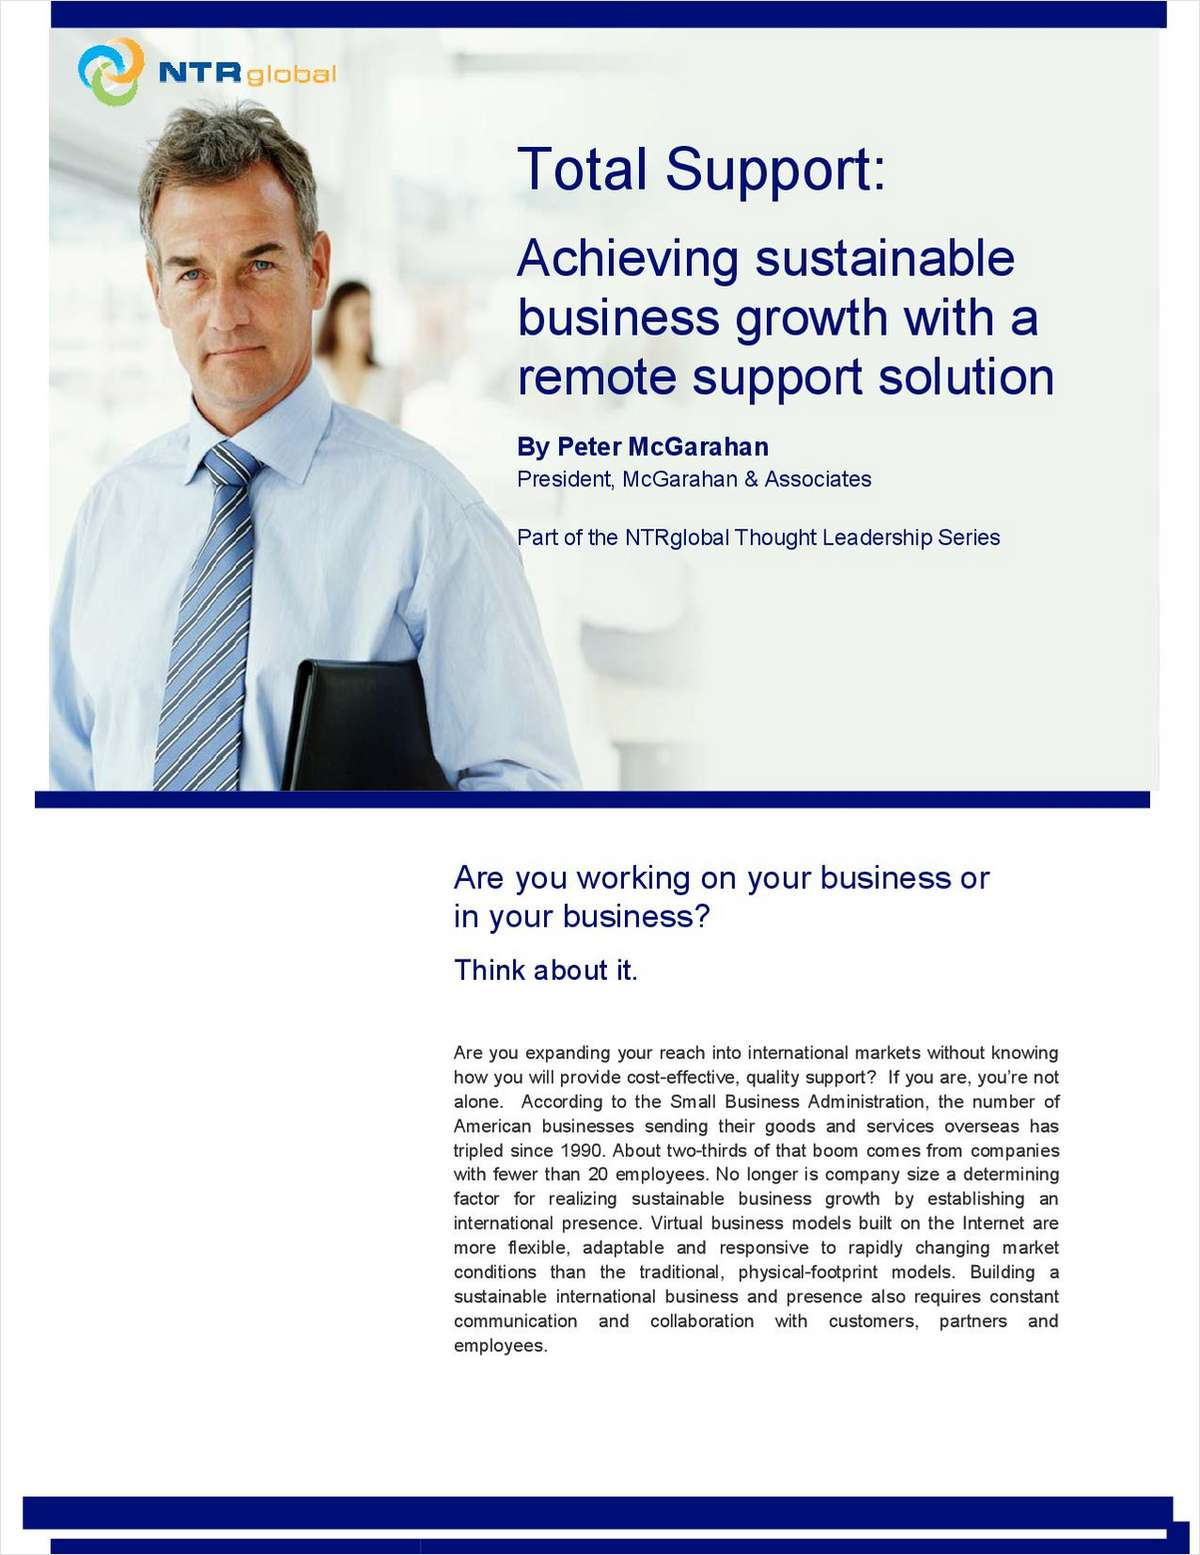 Total Support: Achieving Sustainable Business Growth with a Remote Support Solution